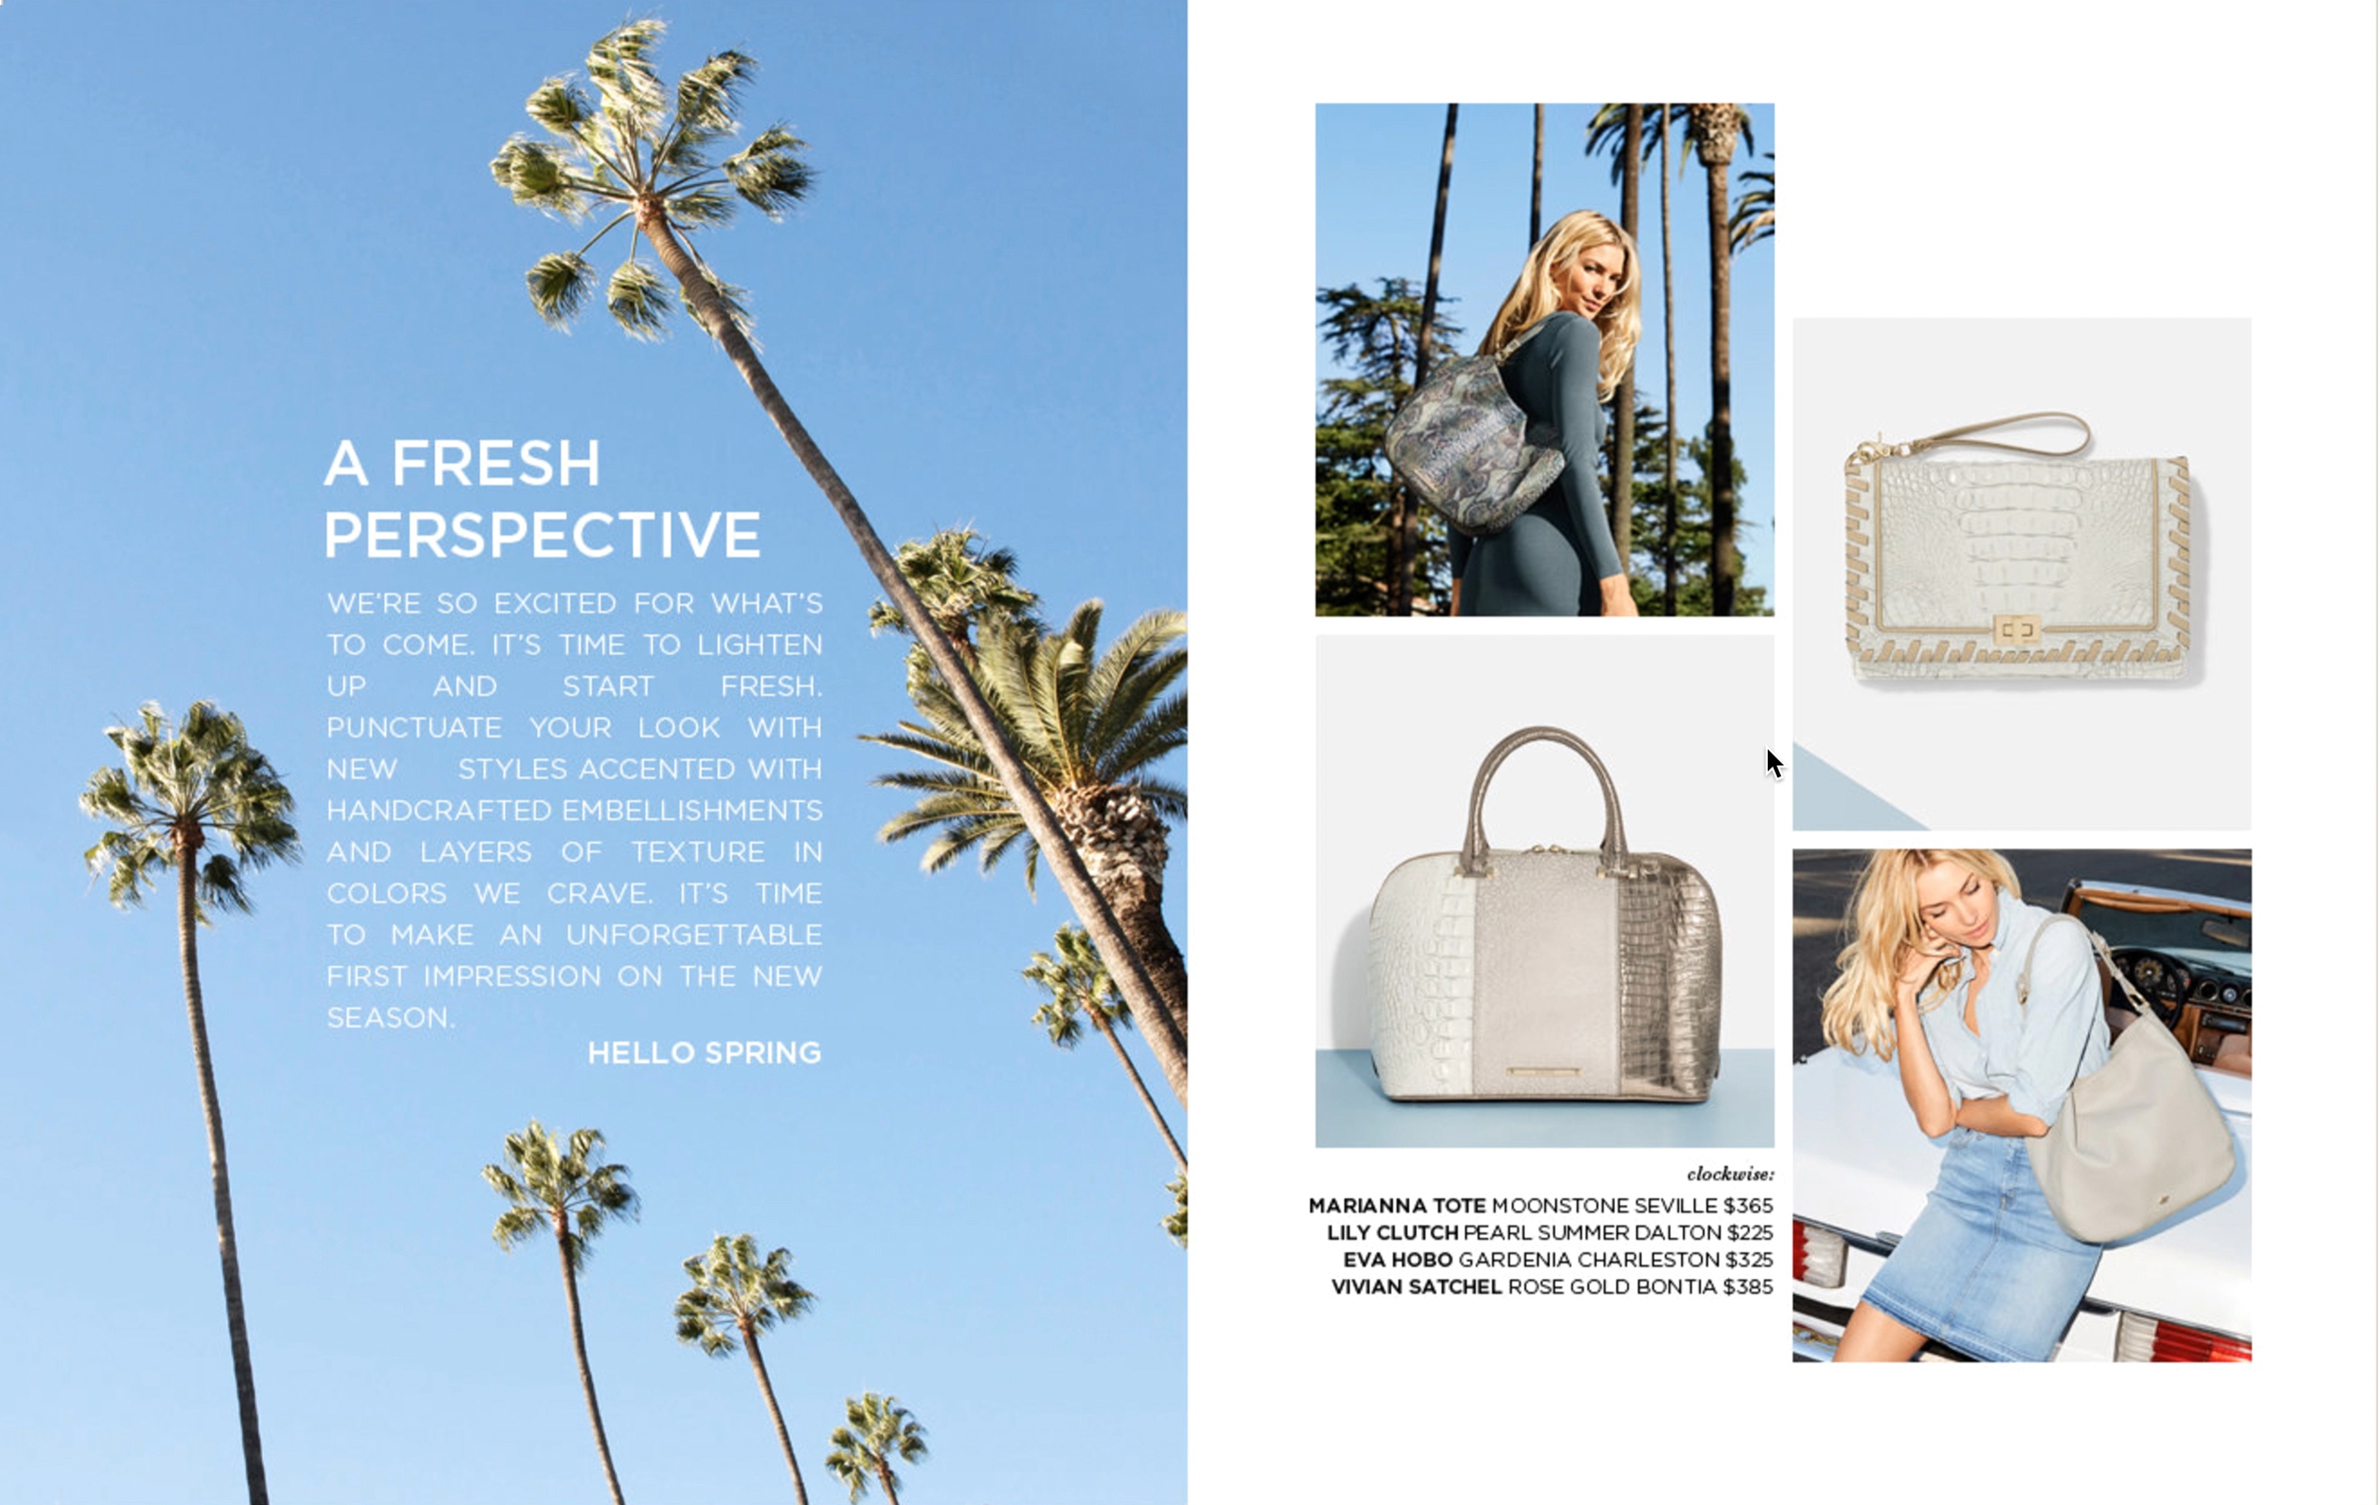 Brahmin_Summer Catalog_Video_2.jpg